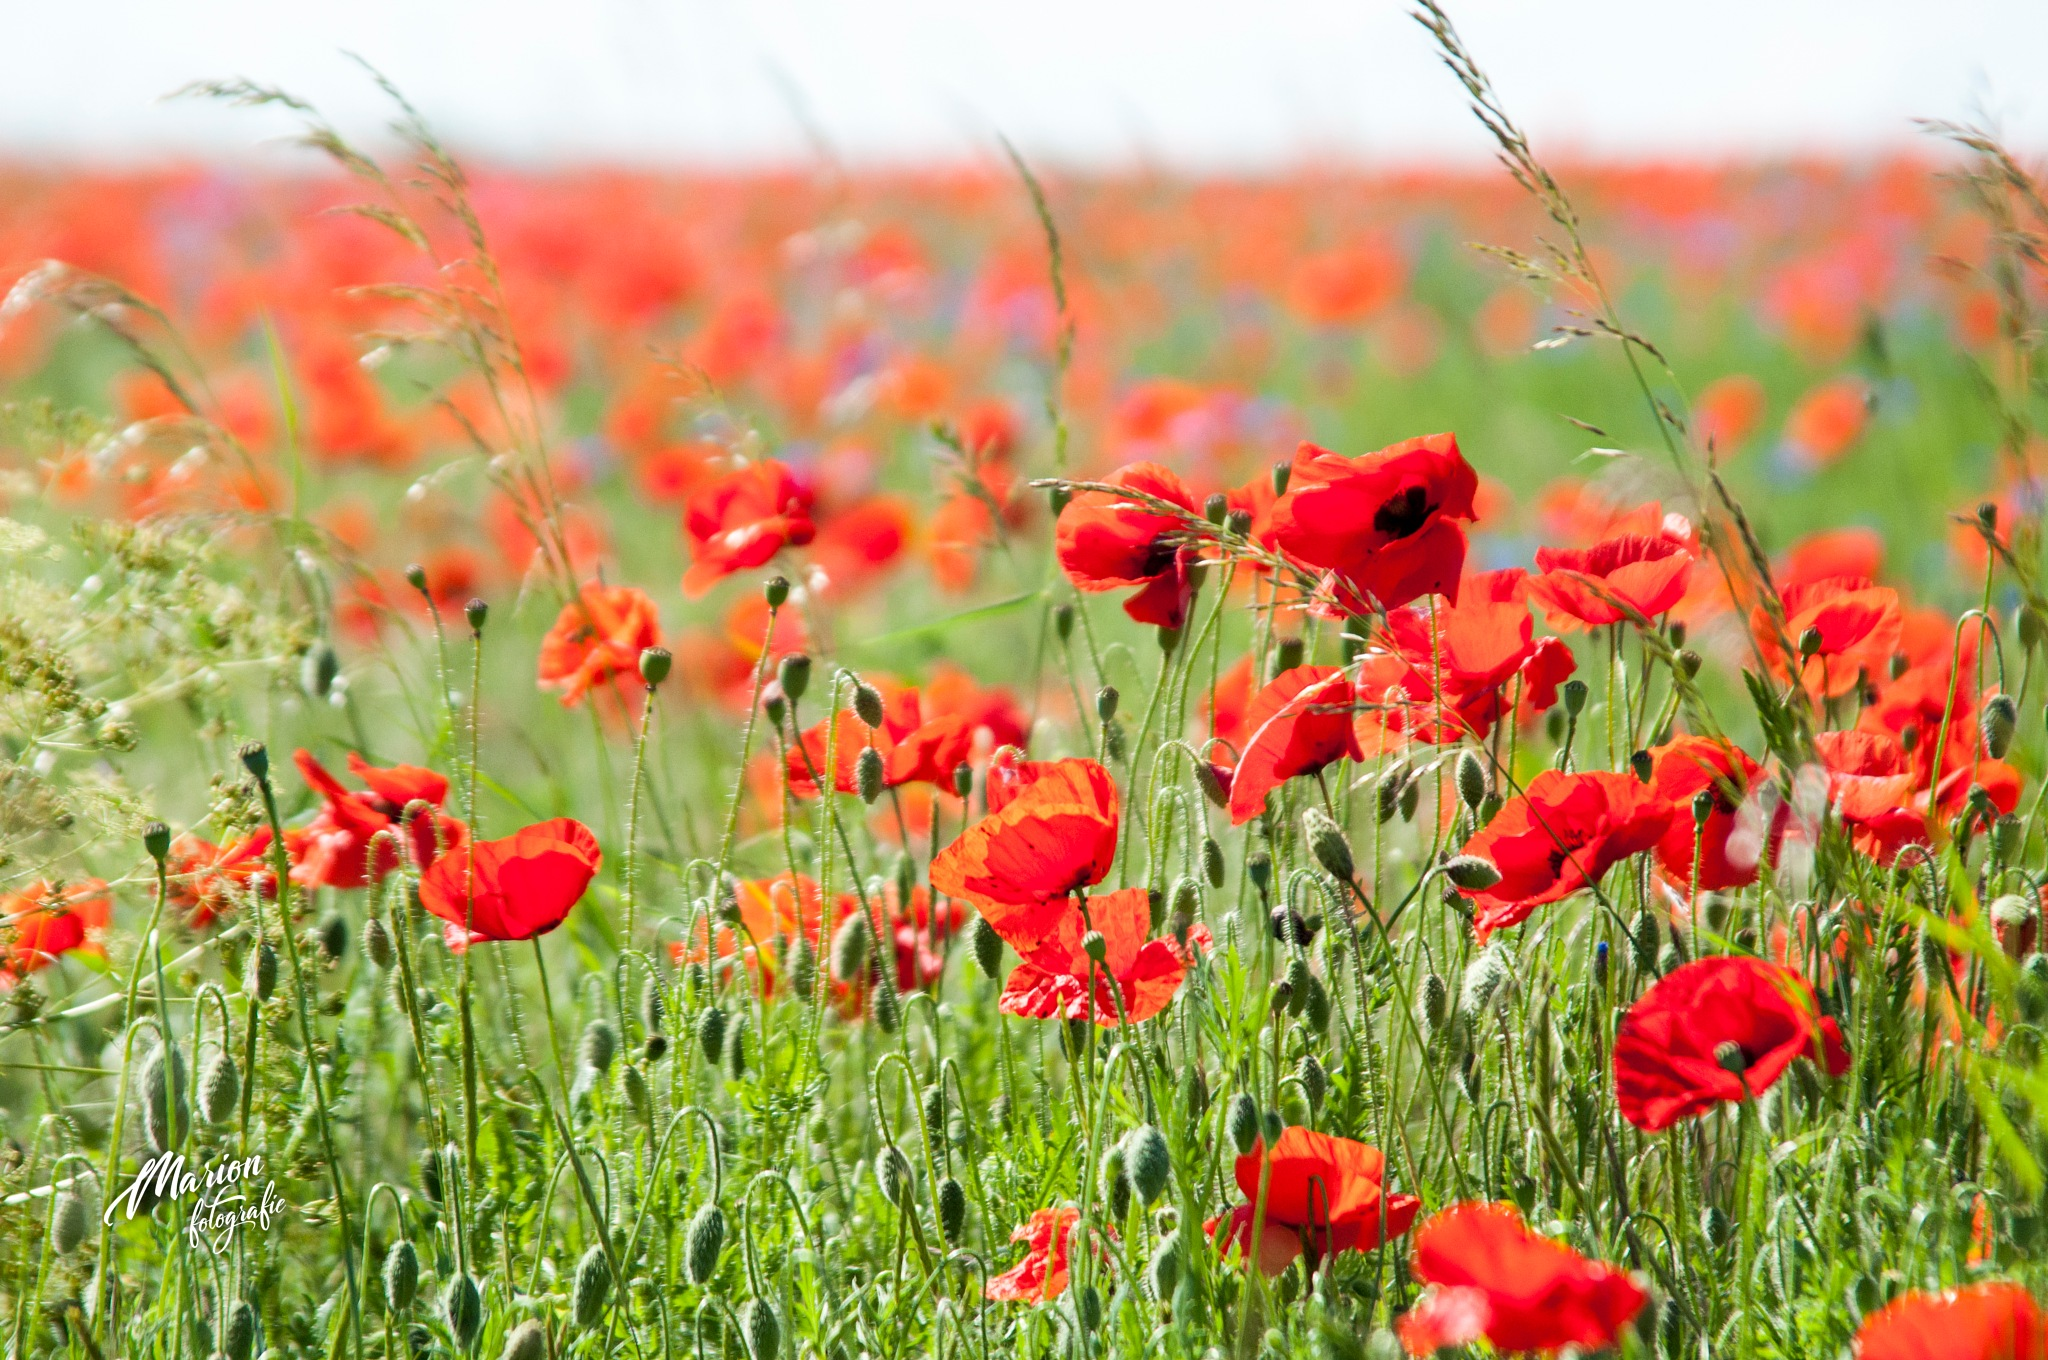 Poppies in France by Marion Verhaaf